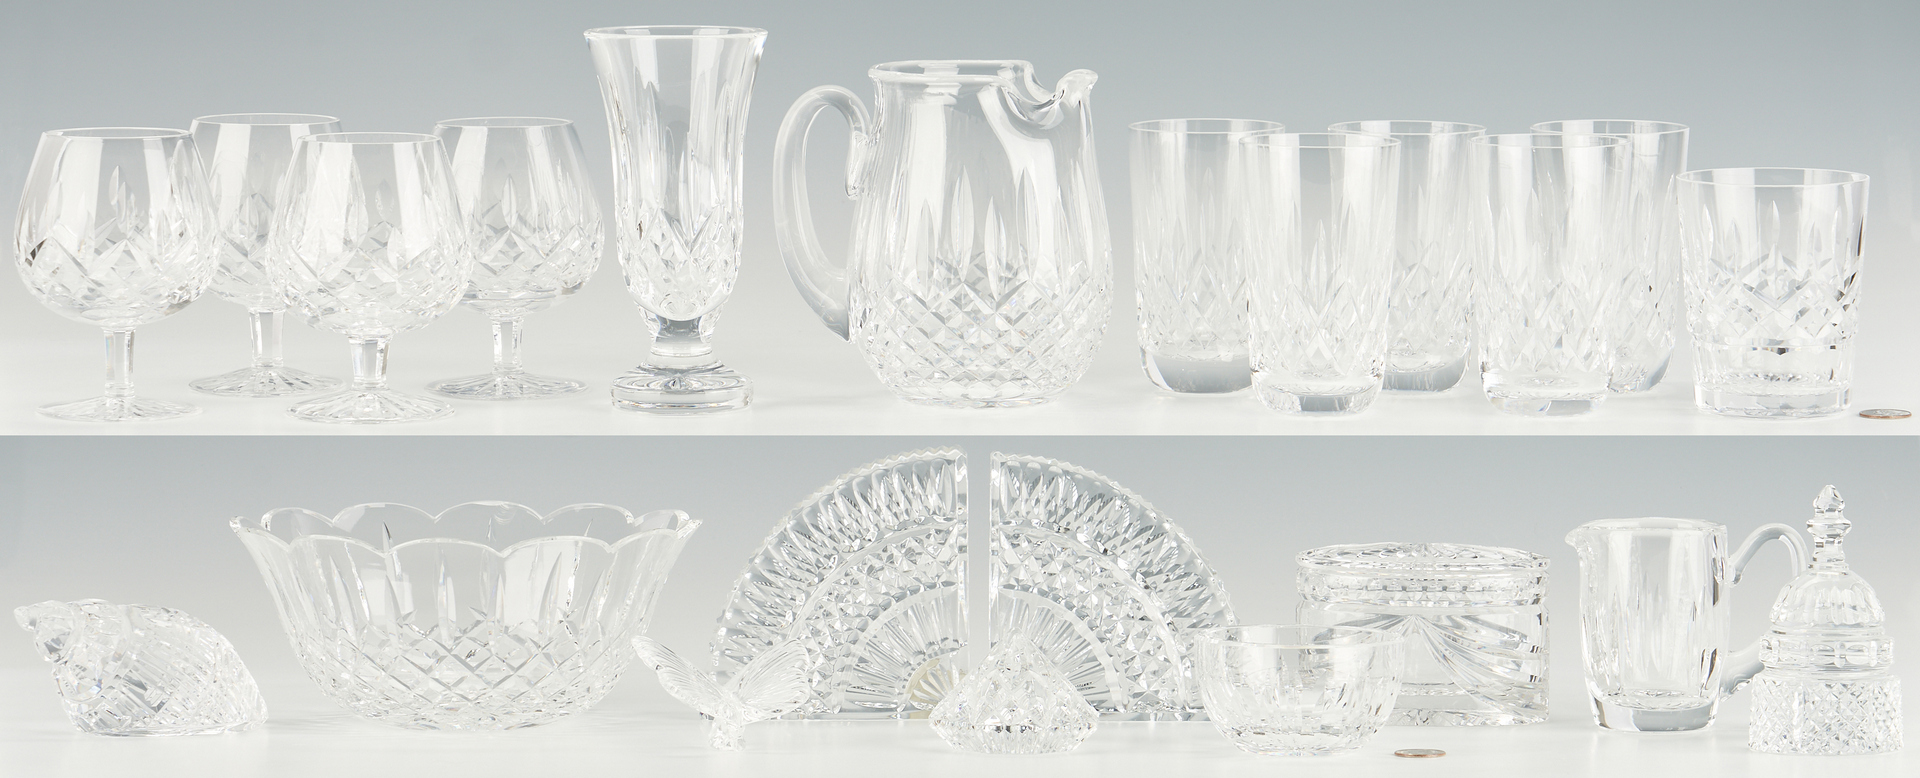 Lot 962: 22 Pcs. Waterford Crystal, incl. Drinkware & Novelty Items